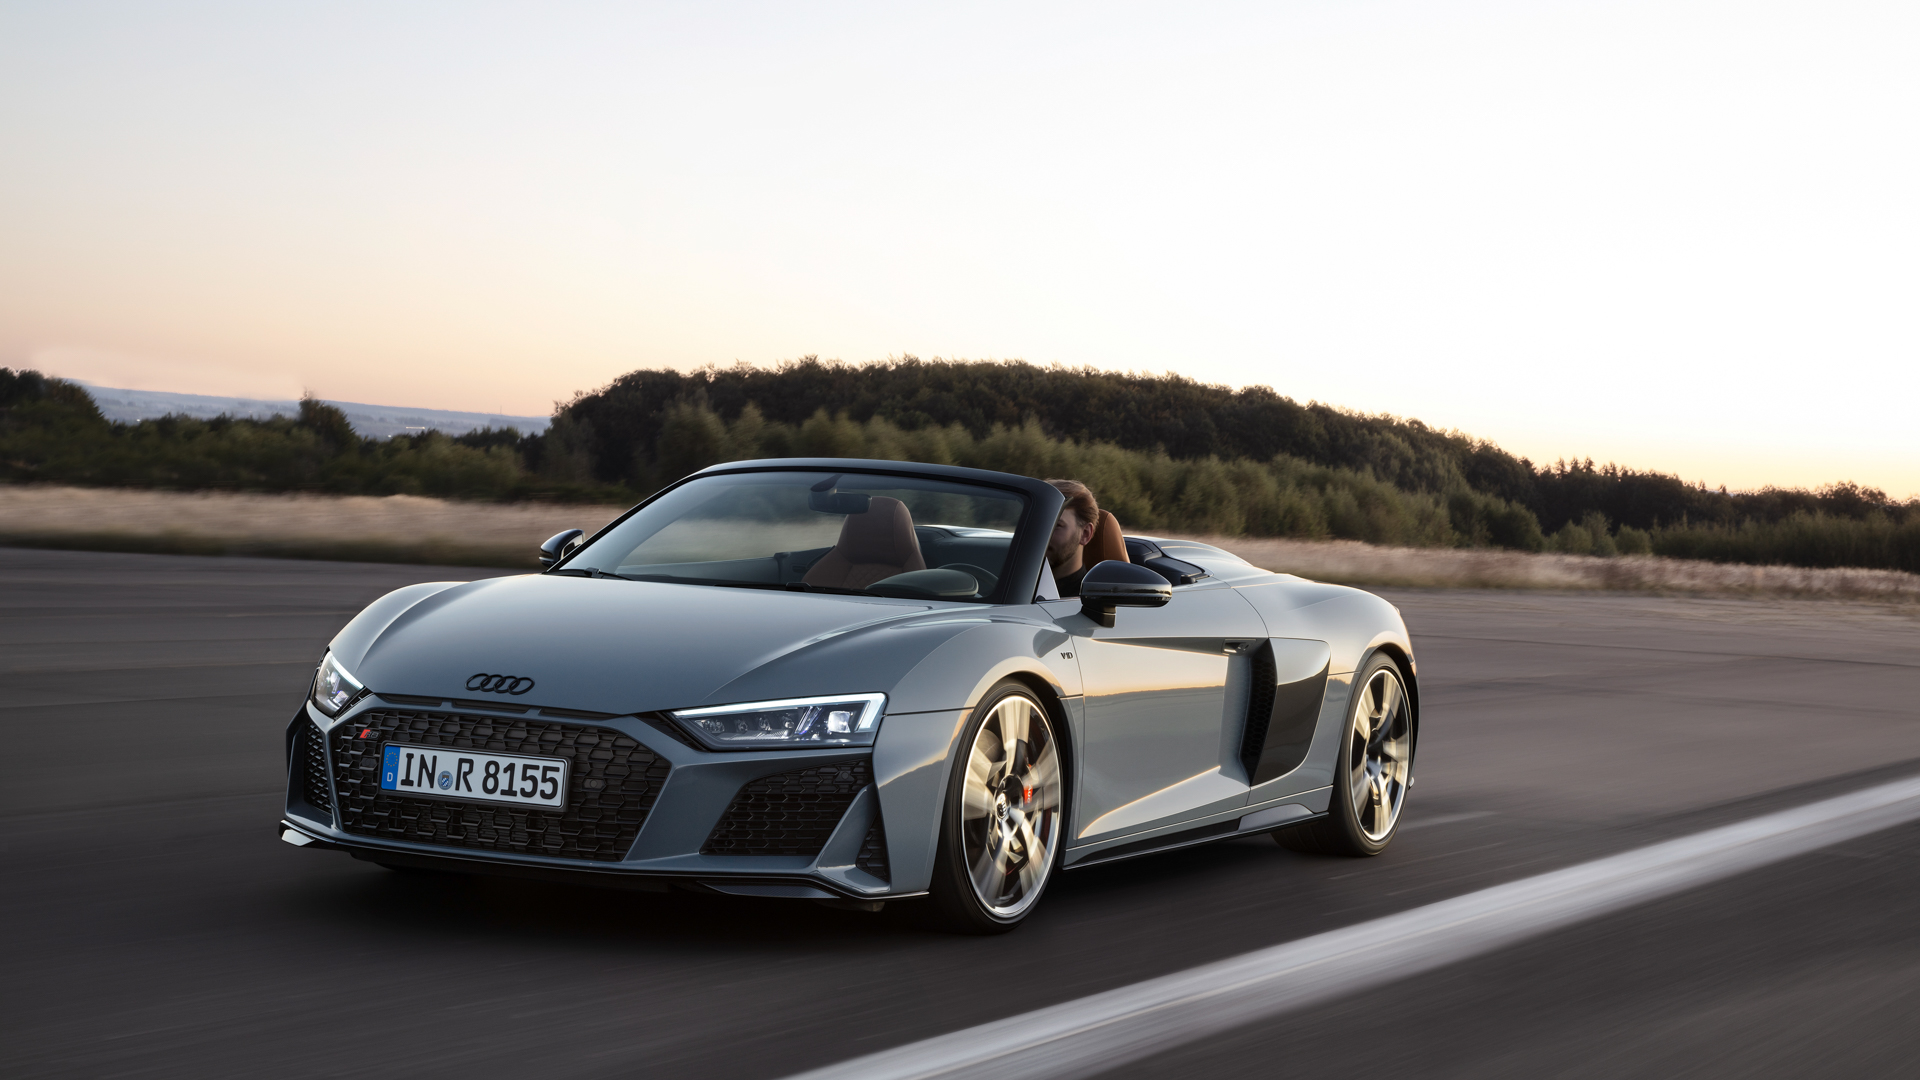 The Top Five Fastest Audis Of All Time As Of 2019